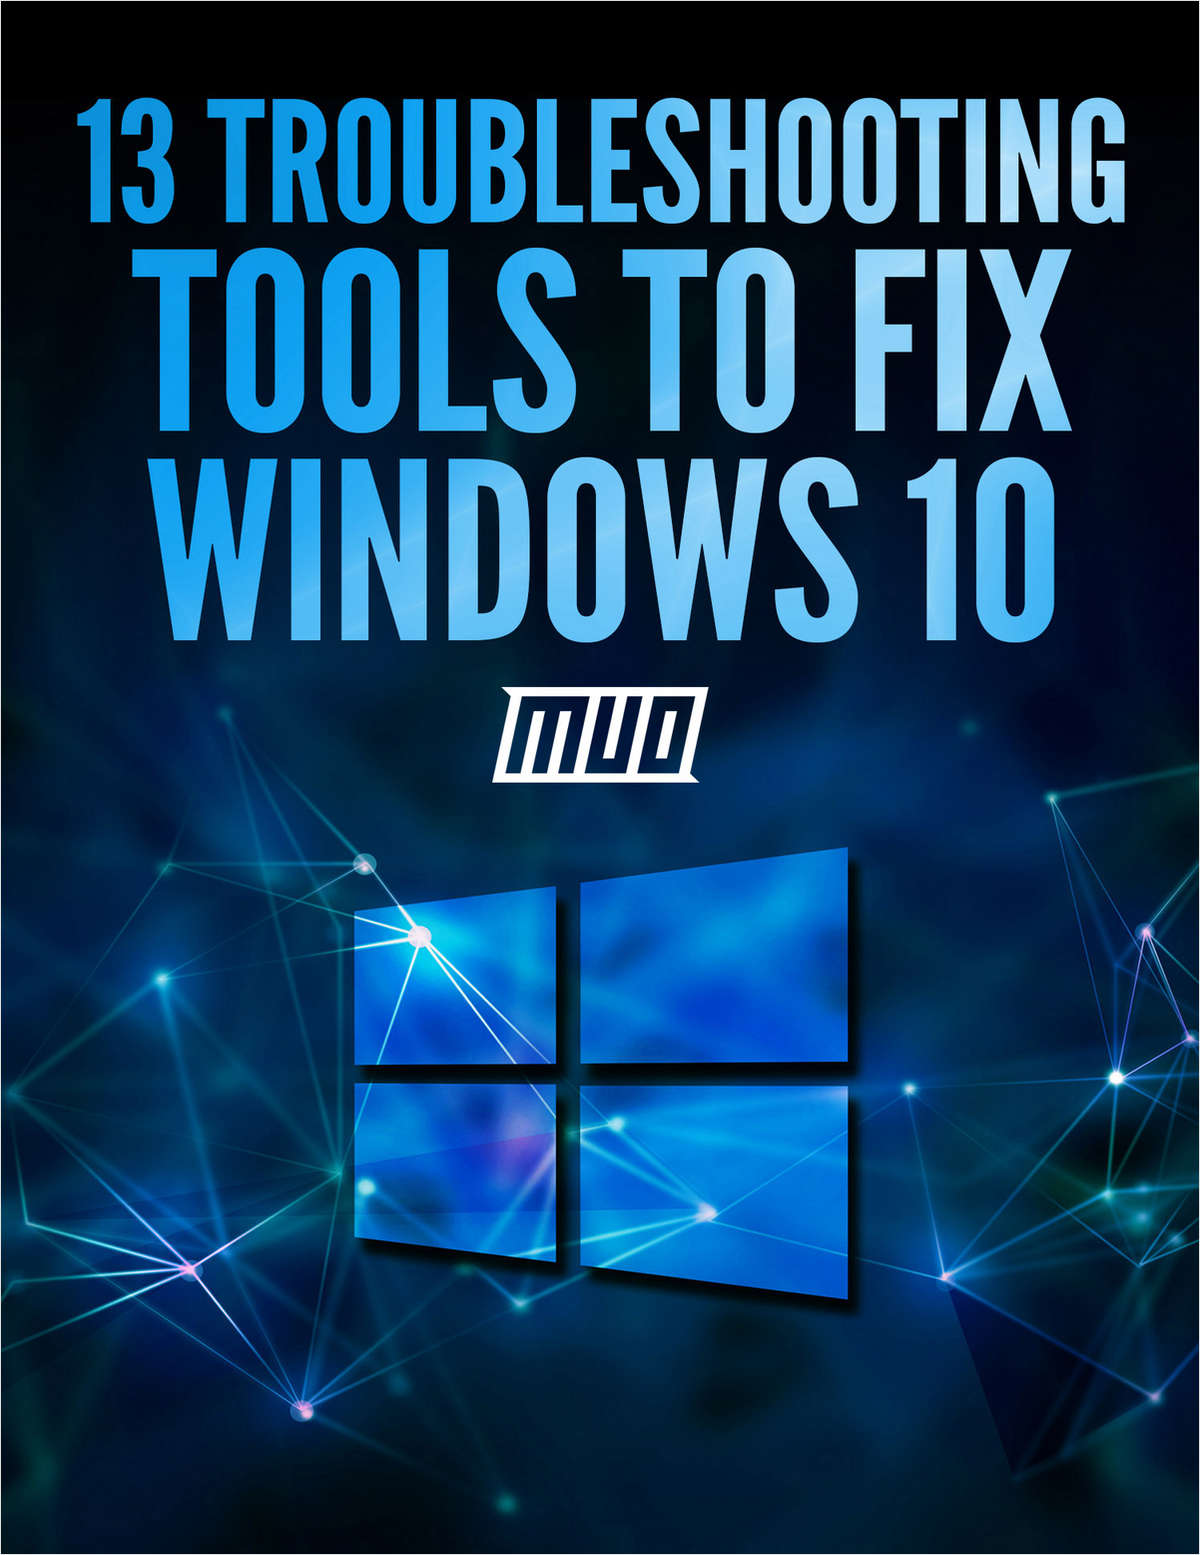 13 Troubleshooting Tools to Fix Windows 10